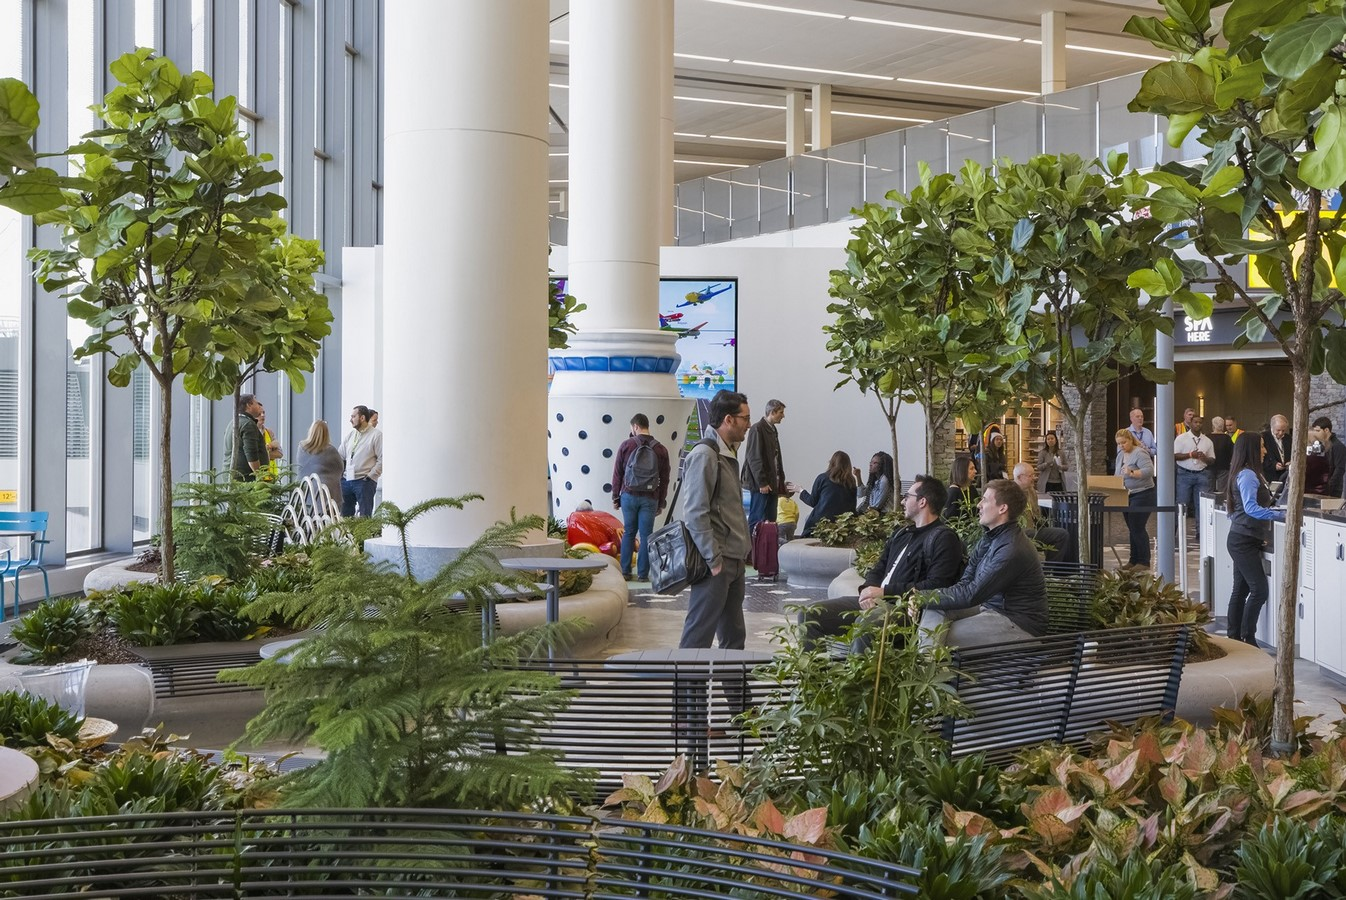 LaGuardia Airport by HOK: Advanced for it's time yet criticized - Sheet16